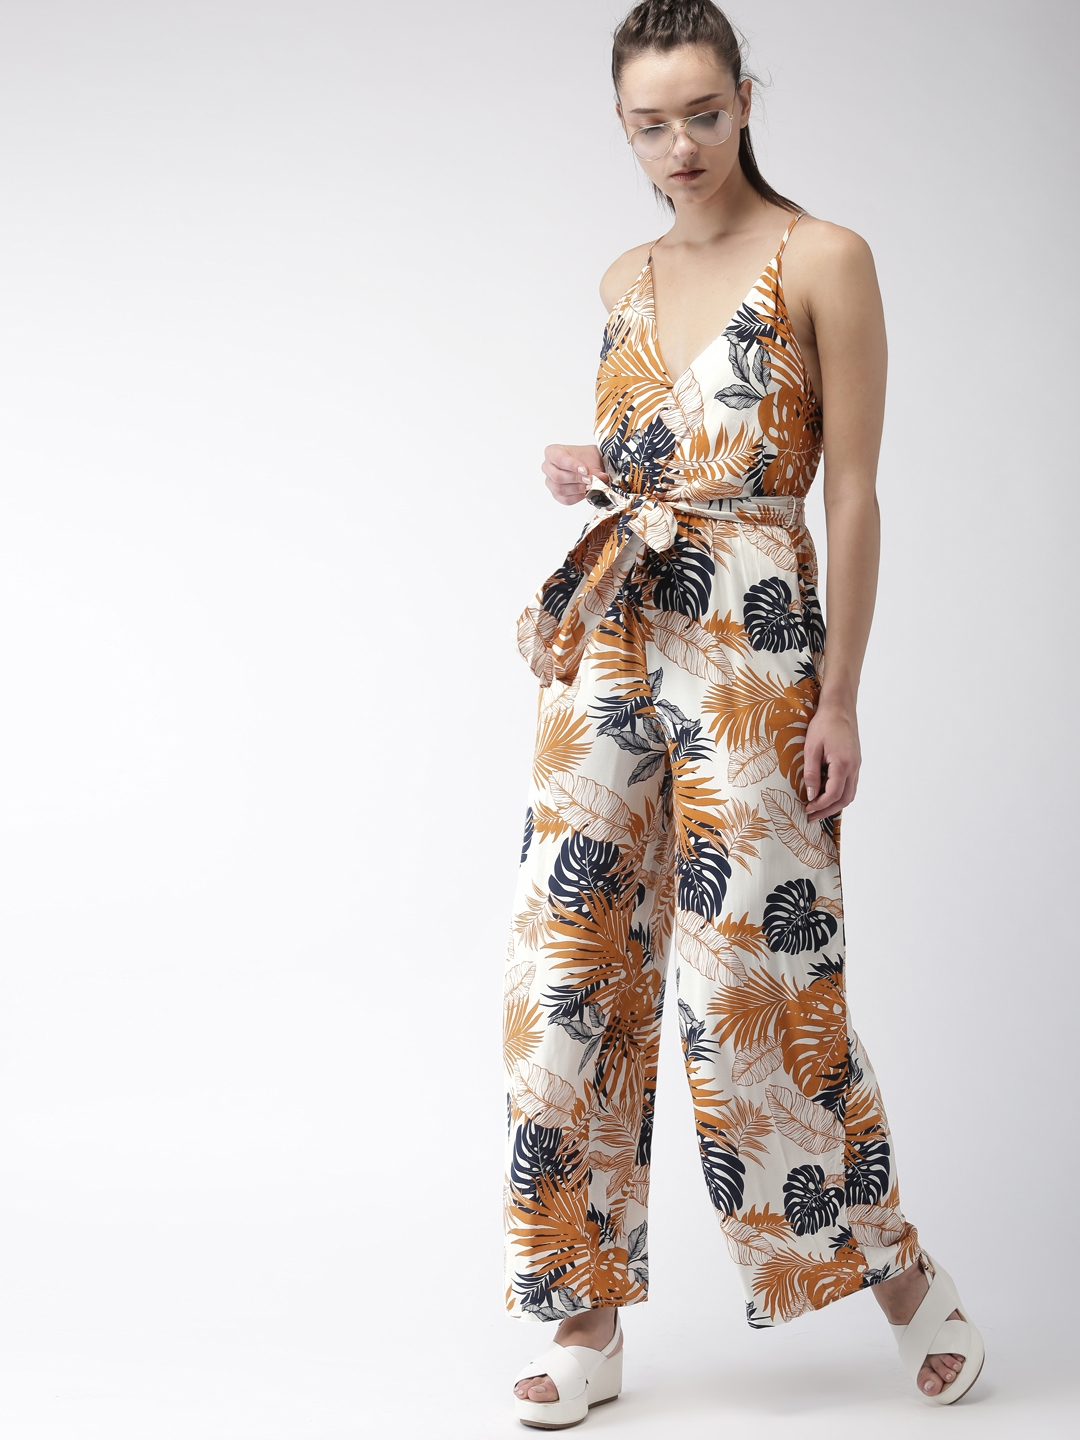 outlet for sale hot-selling clearance cheaper FOREVER 21 White & Brown Printed Basic Jumpsuit